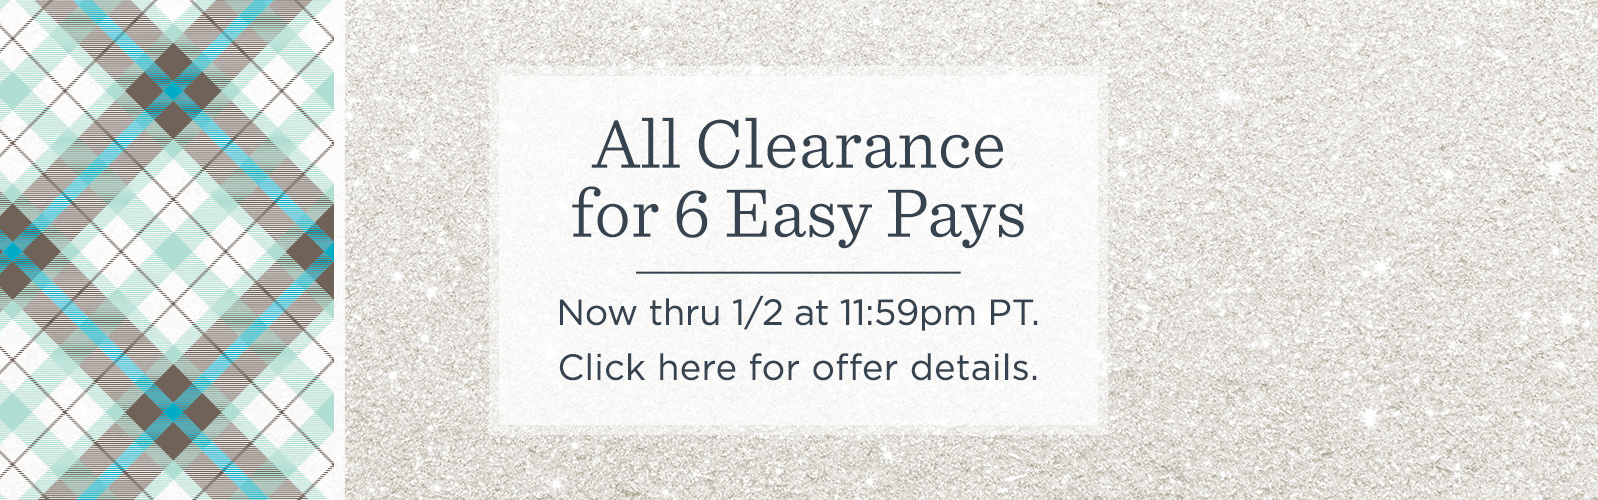 All Clearance For 6 Easy Pays Now Thru 1 2 At 11 59pm